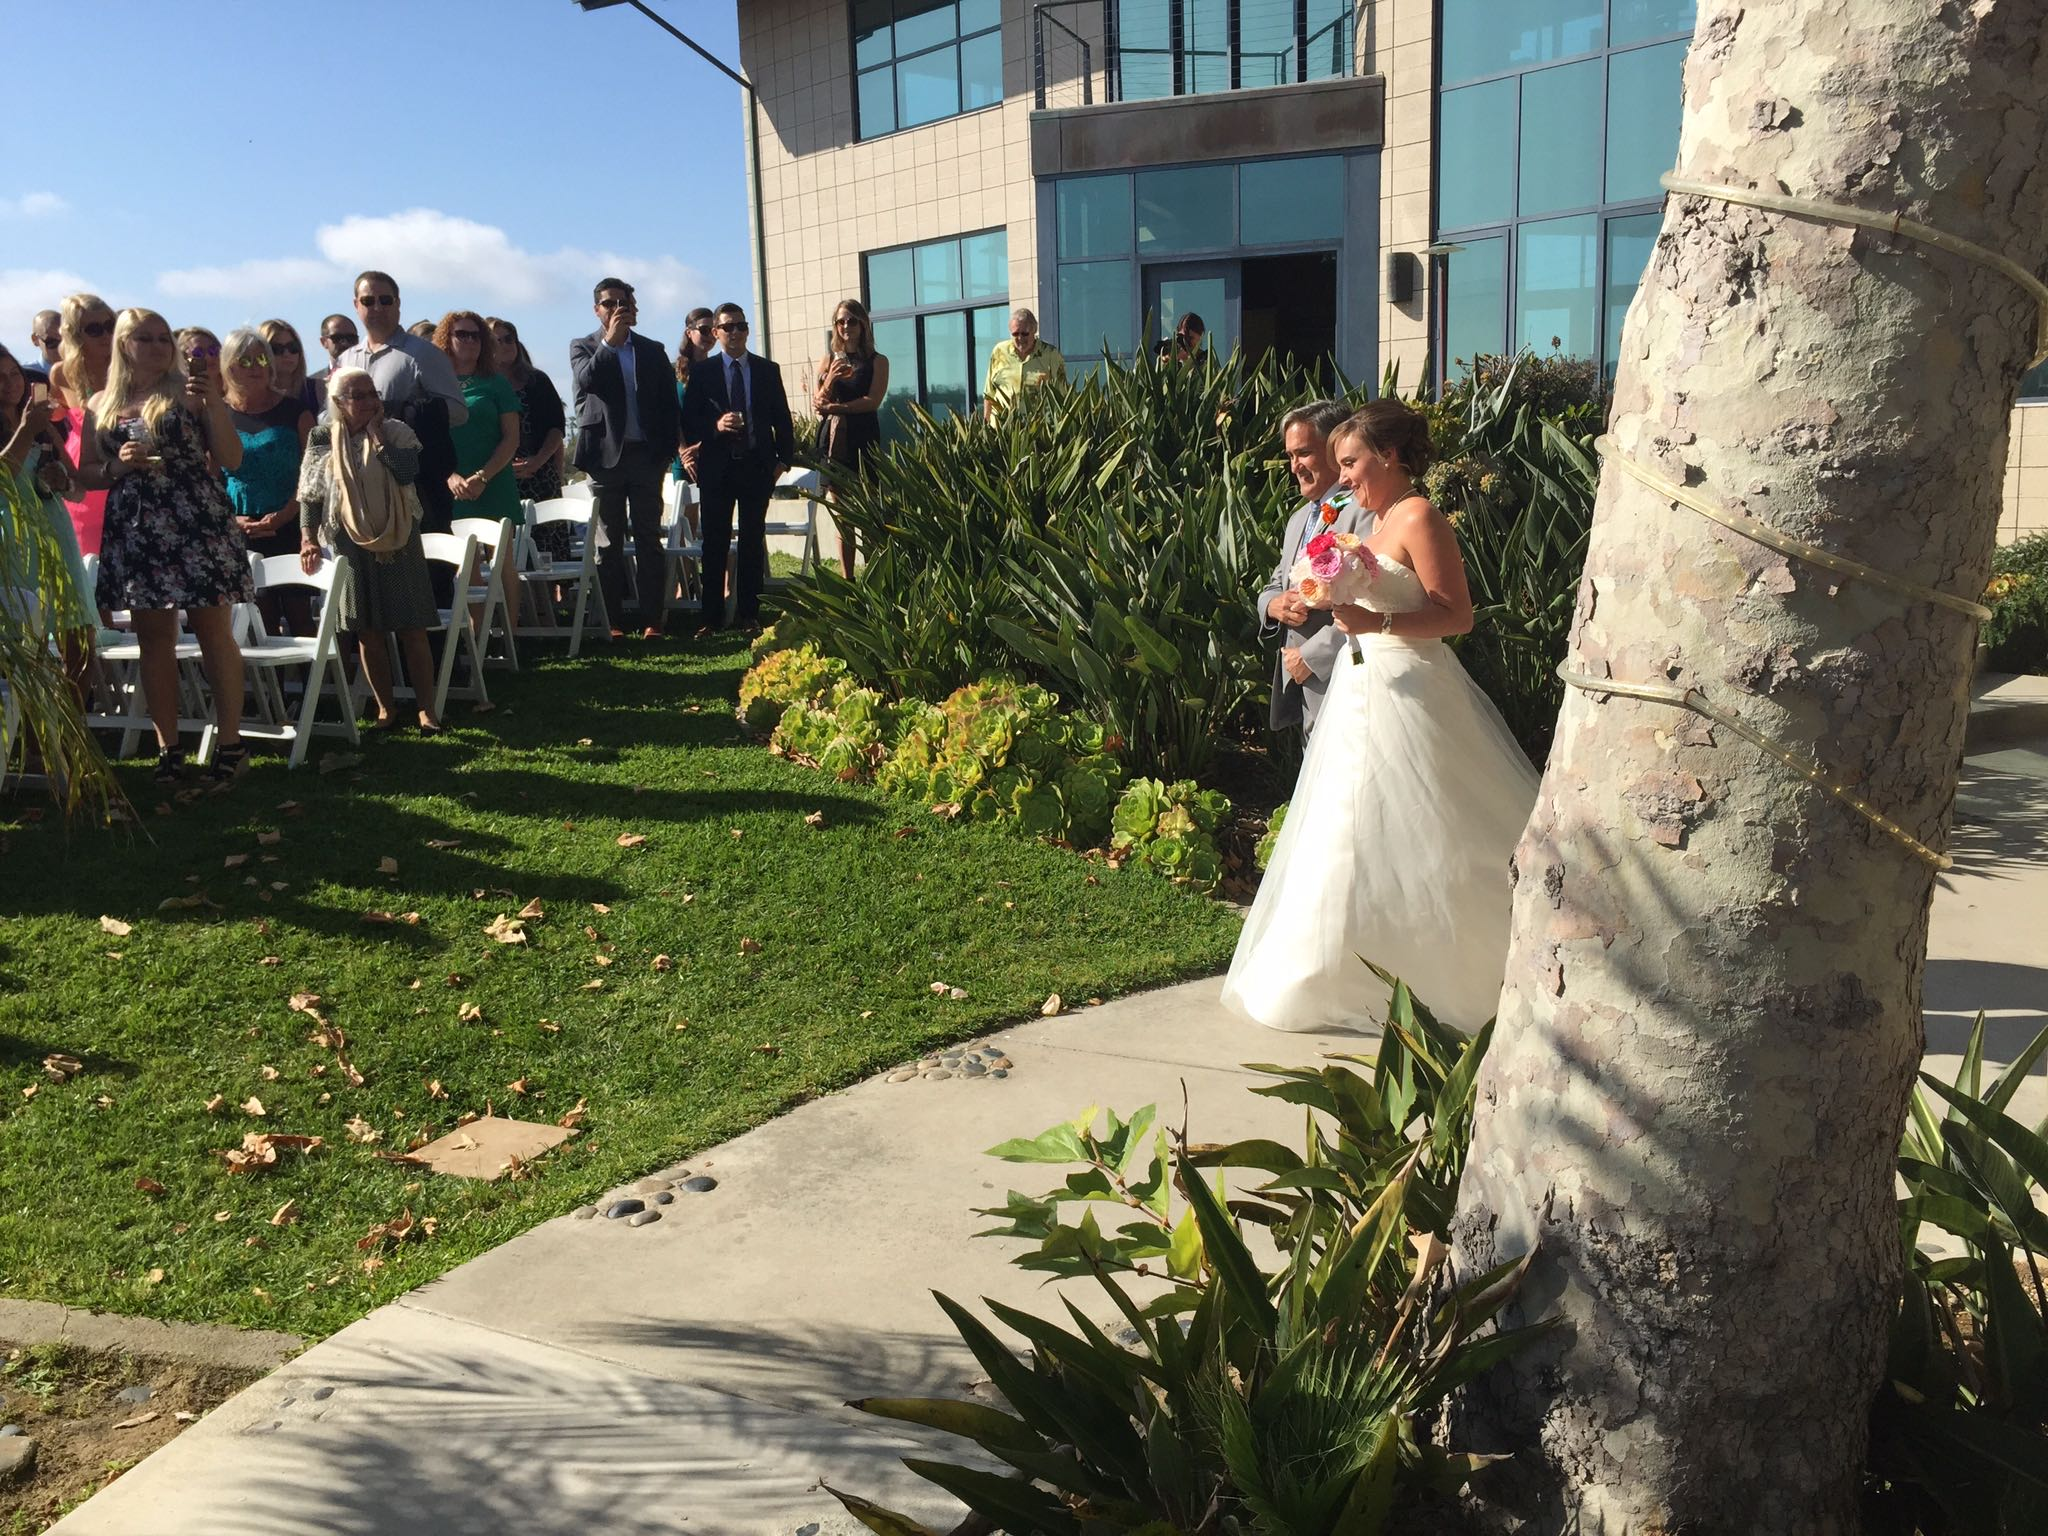 Dad walking daughter down the aisle at Levyland Estates in Carlsbad, California.